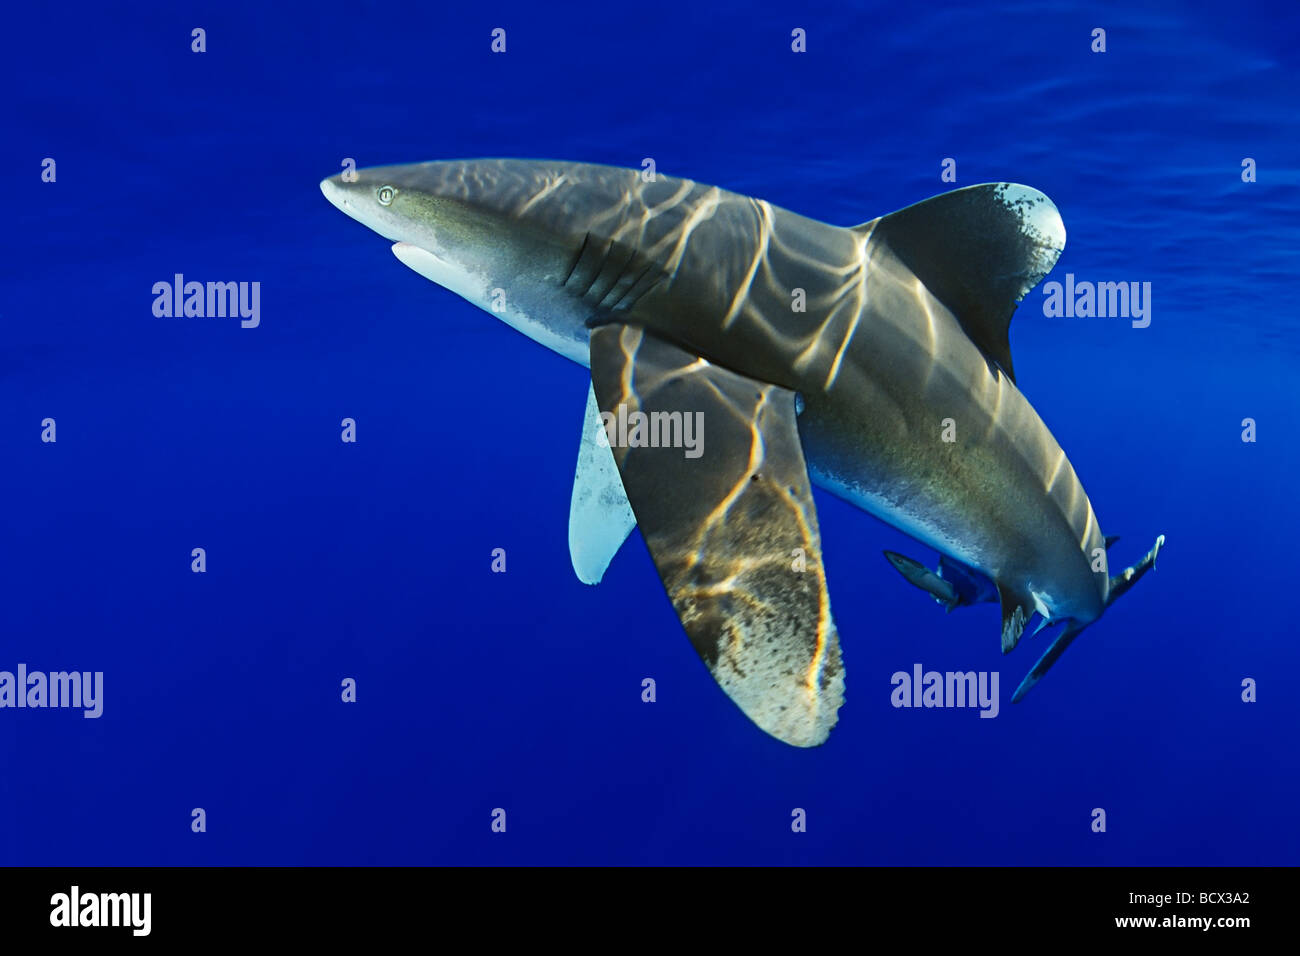 Oceanic Whitetip Sharks Carcharhinus longimanus Kona Coast Big Island Pacific Ocean Hawaii USA - Stock Image